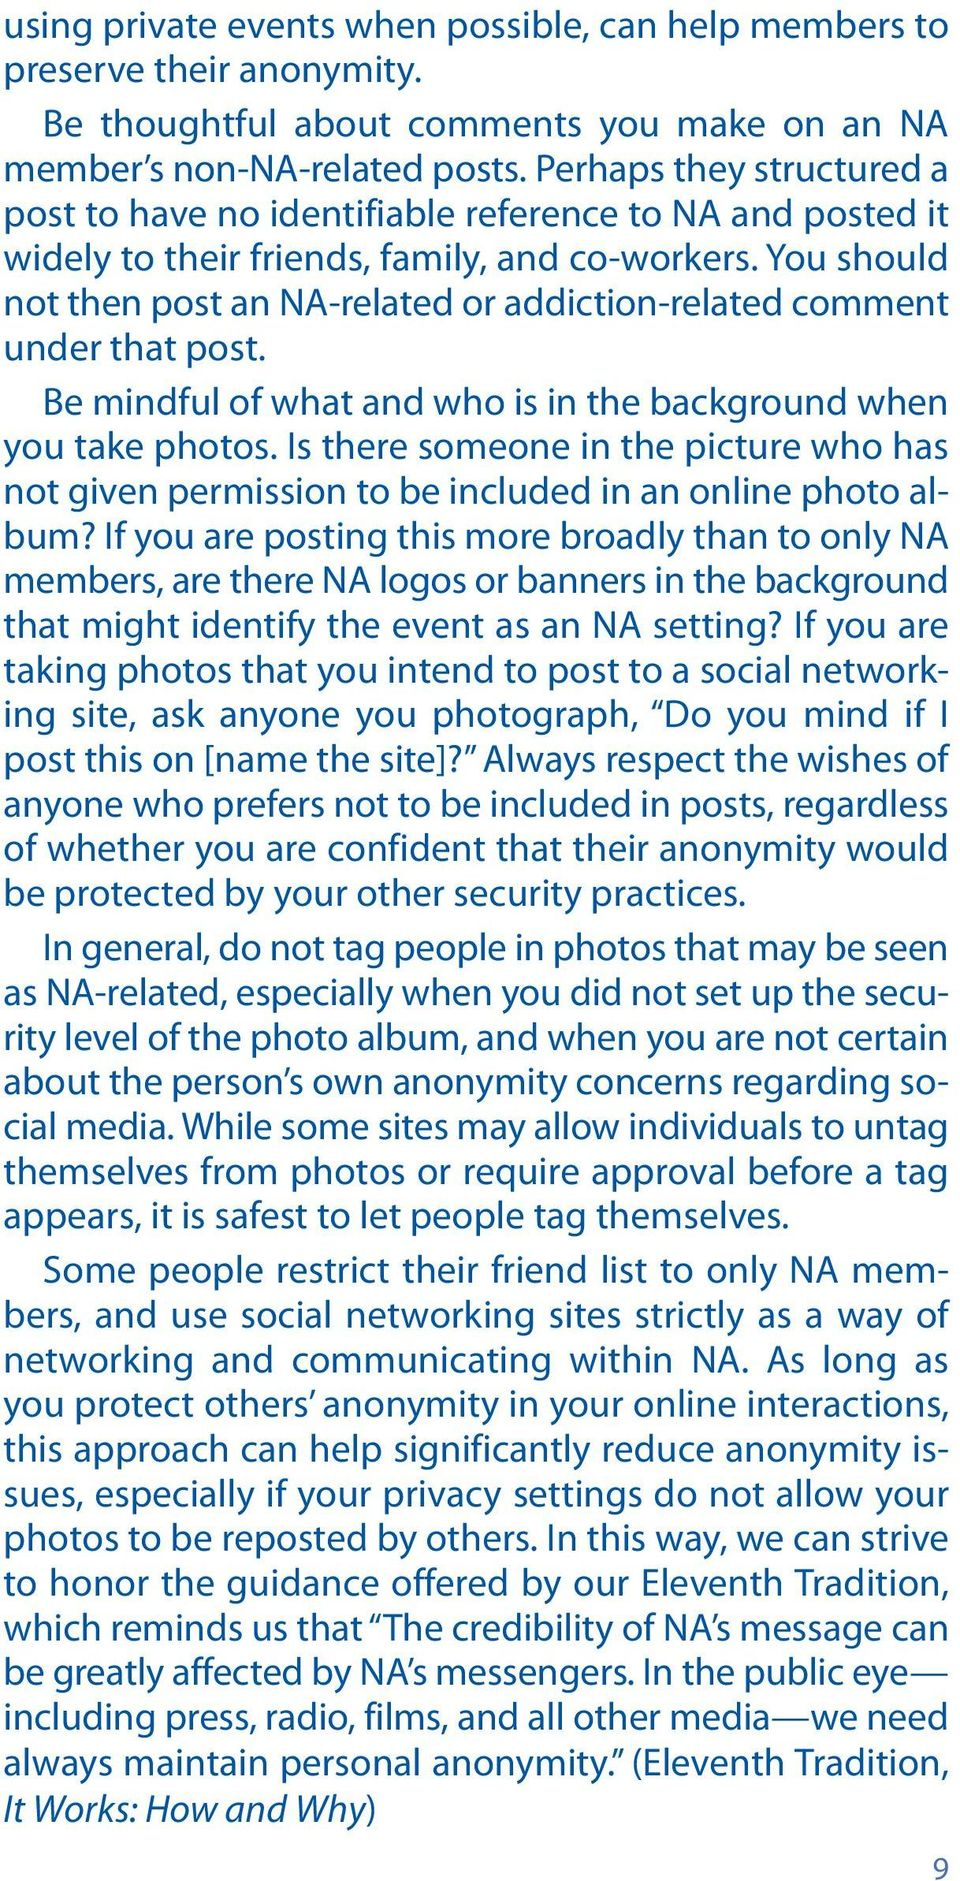 You should not then post an NA-related or addiction-related comment under that post. Be mindful of what and who is in the background when you take photos.